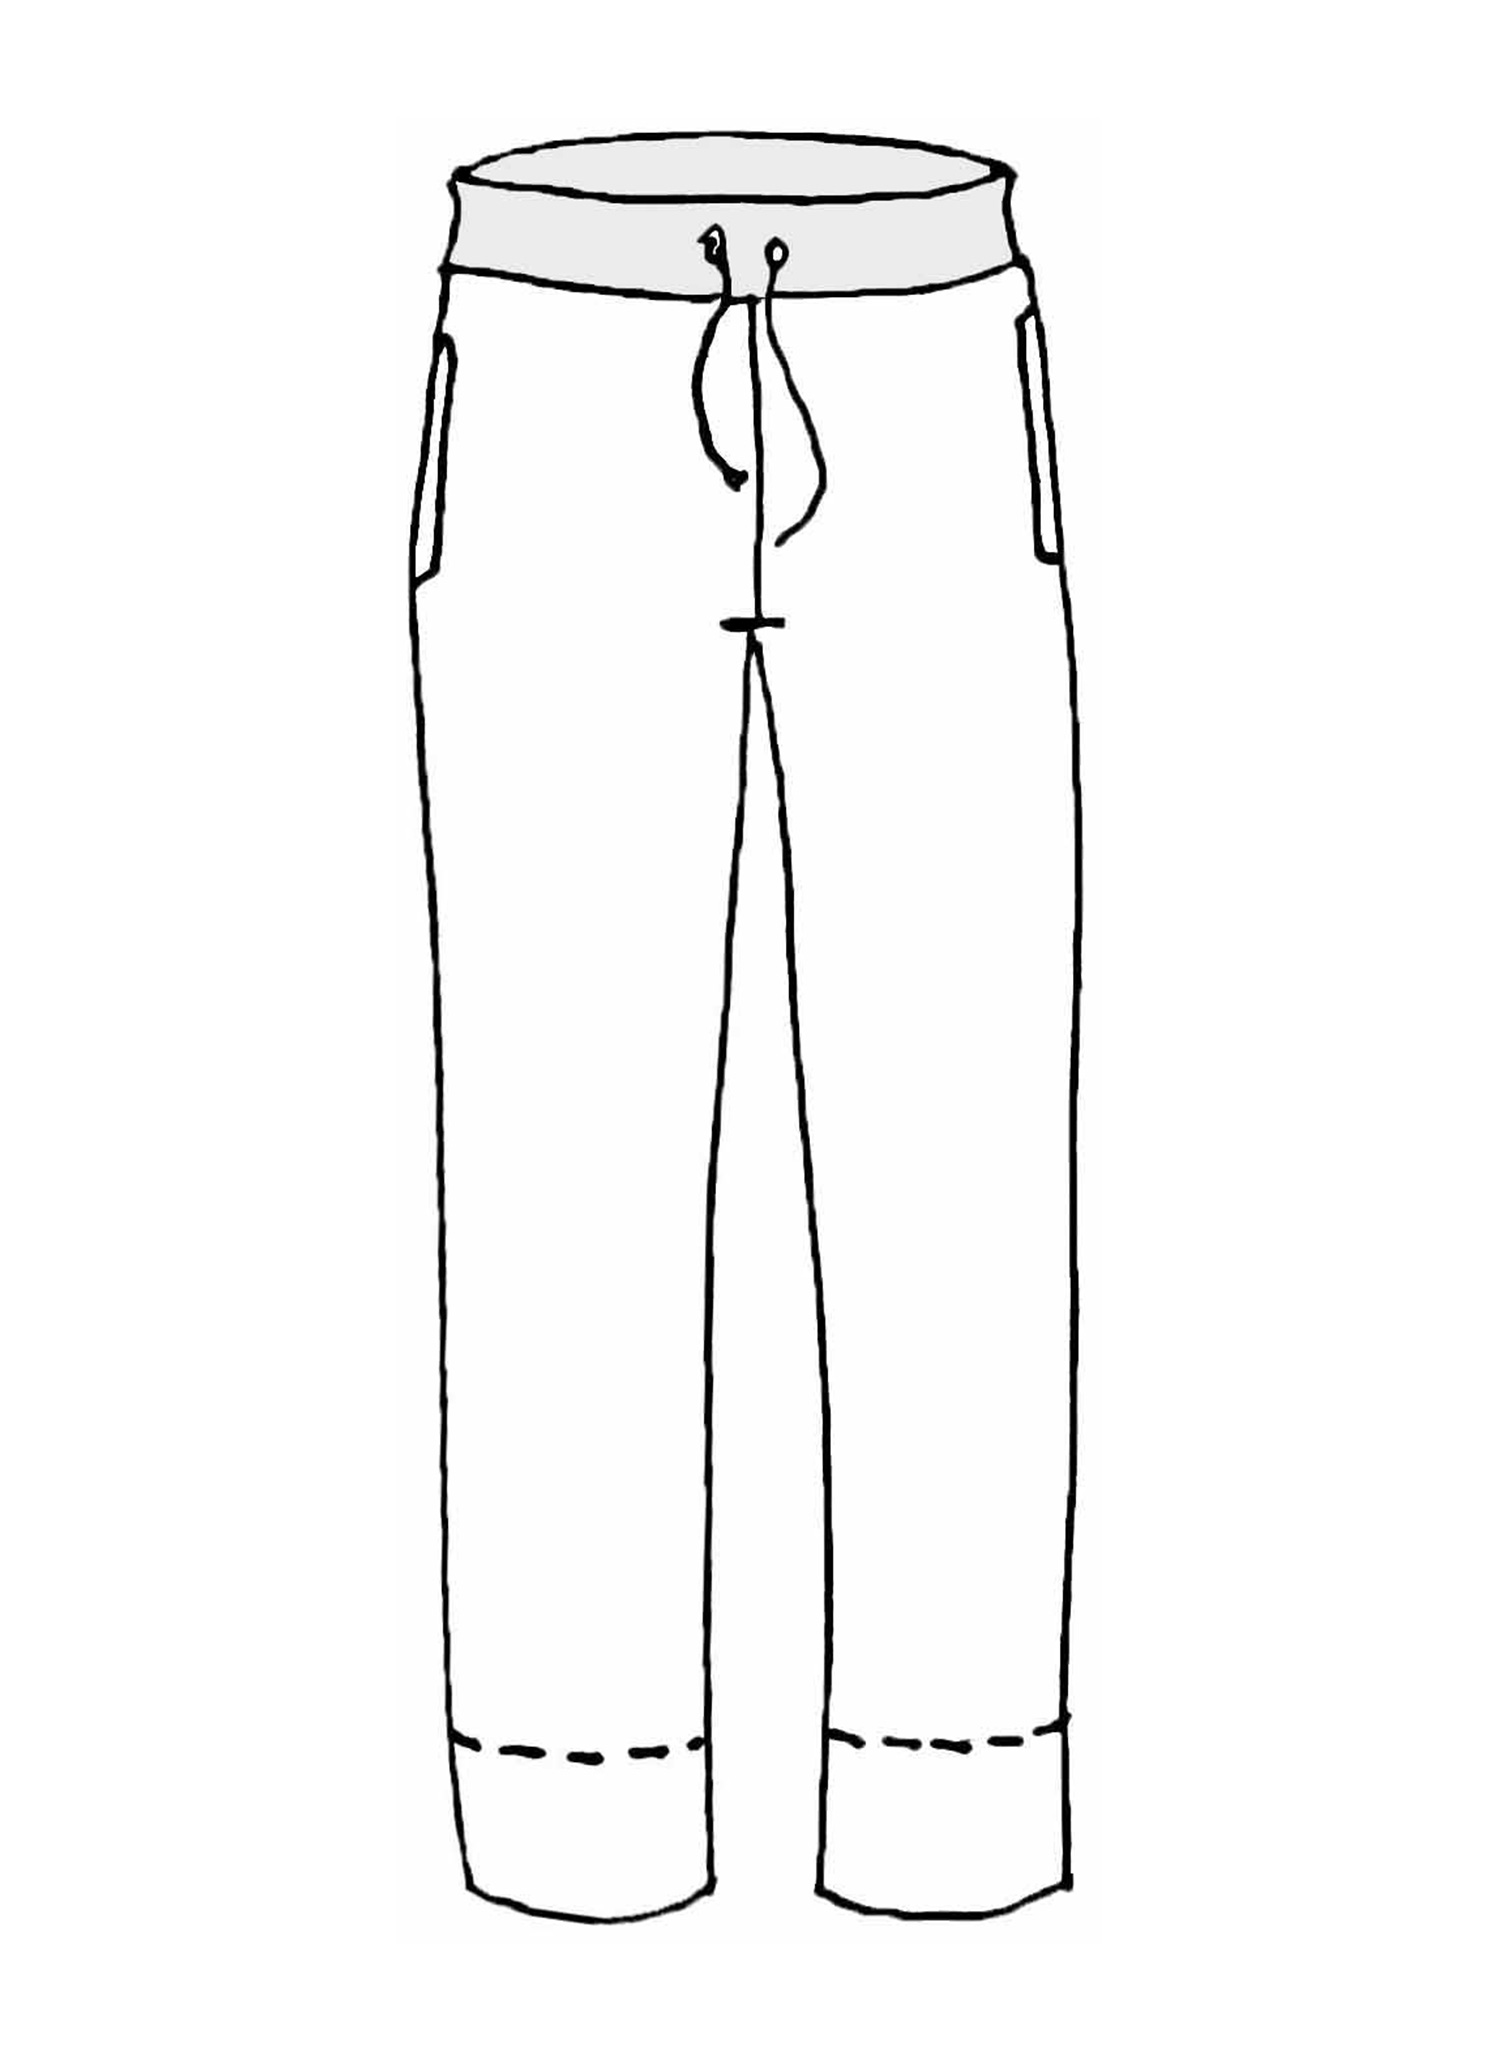 Cut Above Pant sketch image